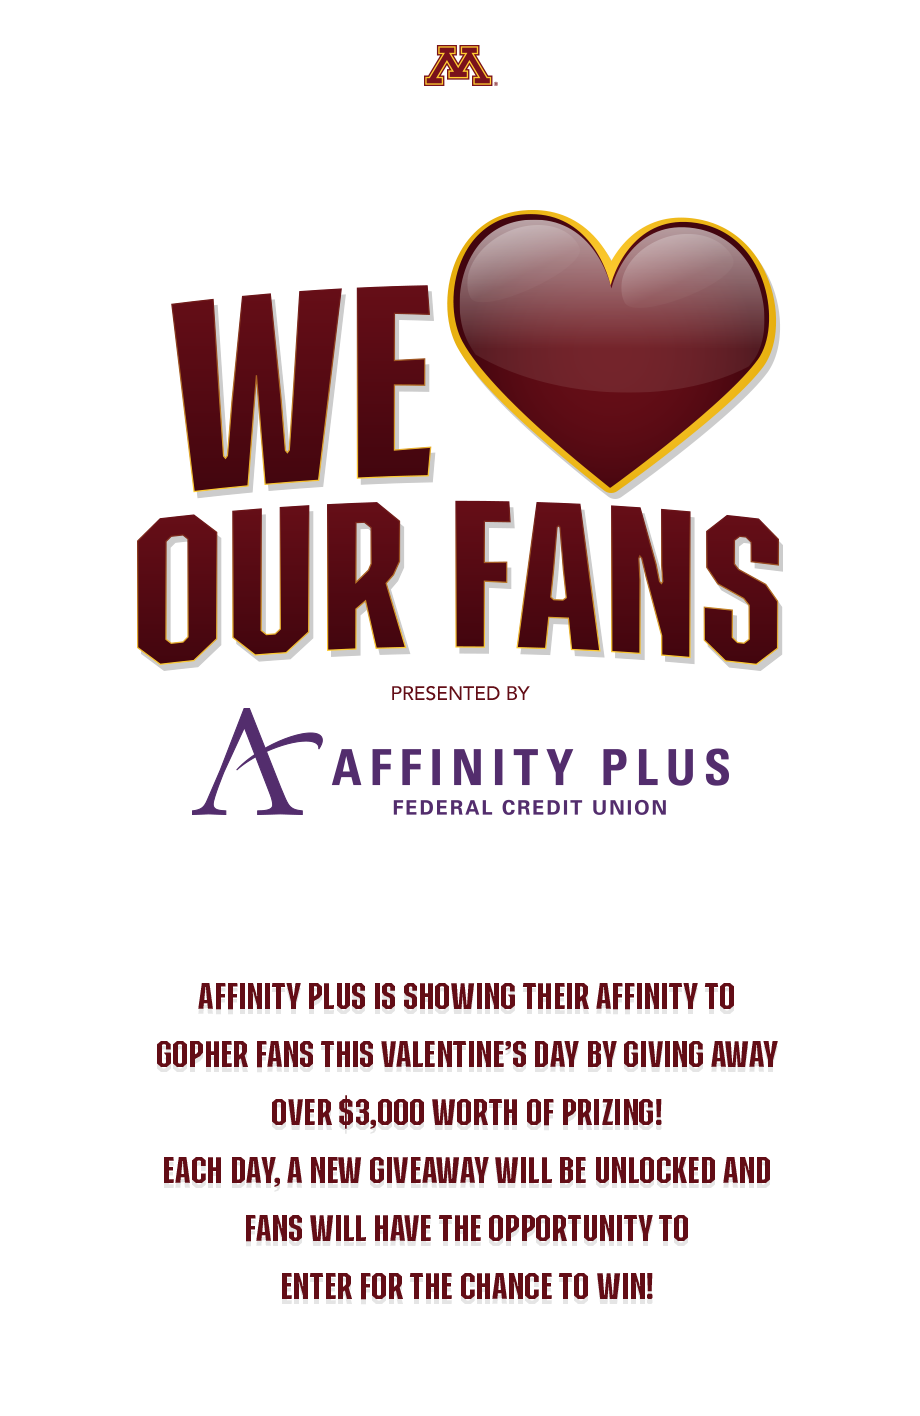 Affinity Plus Enter For A Chance To Win University Of Minnesota Athletics